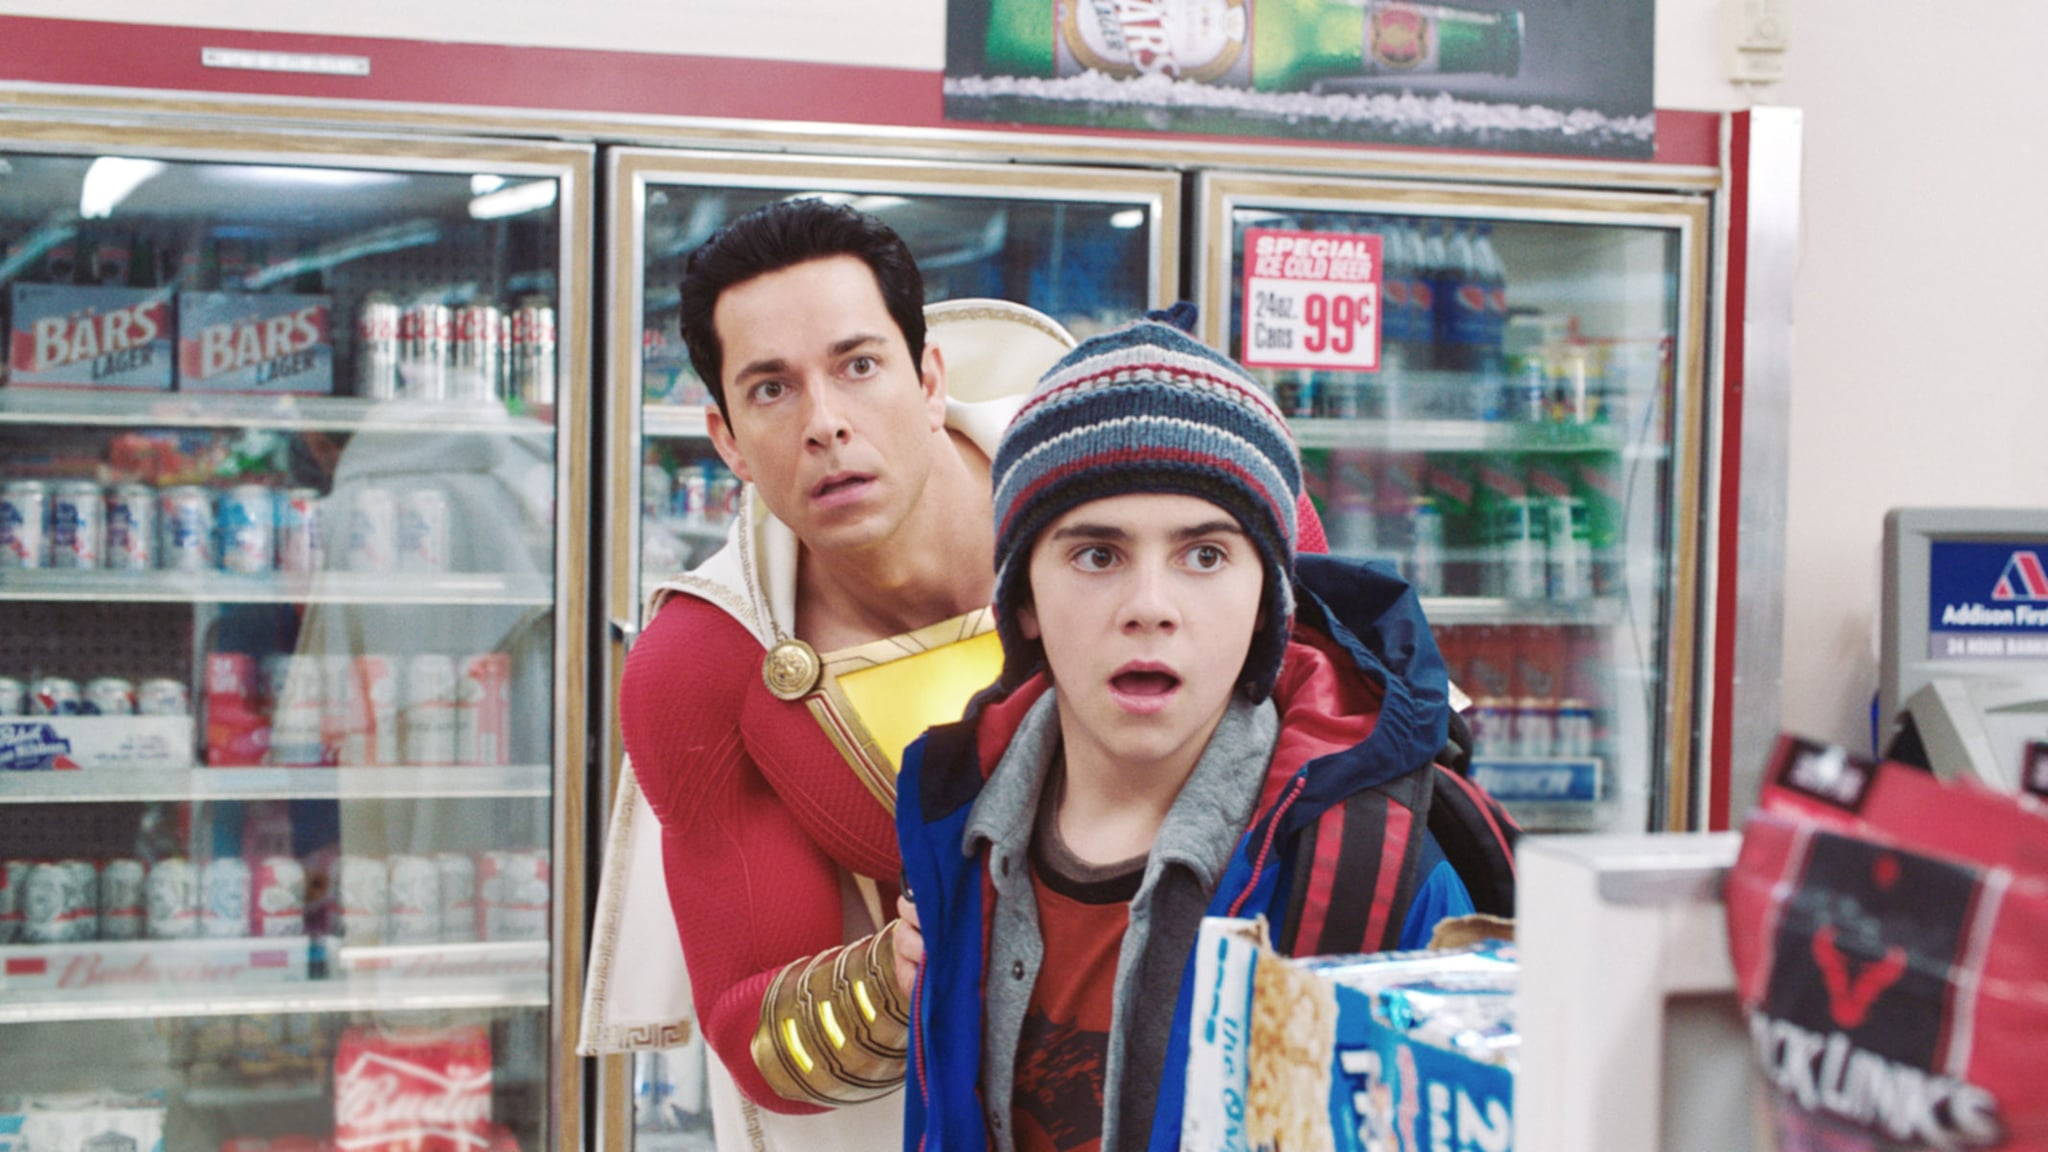 SHAZAM!, from left: Zachary Levi (as Shazam), Jack Dylan Grazer, 2019. ph: Steve Wilkie /  Warner Brothers / courtesy Everett Collection